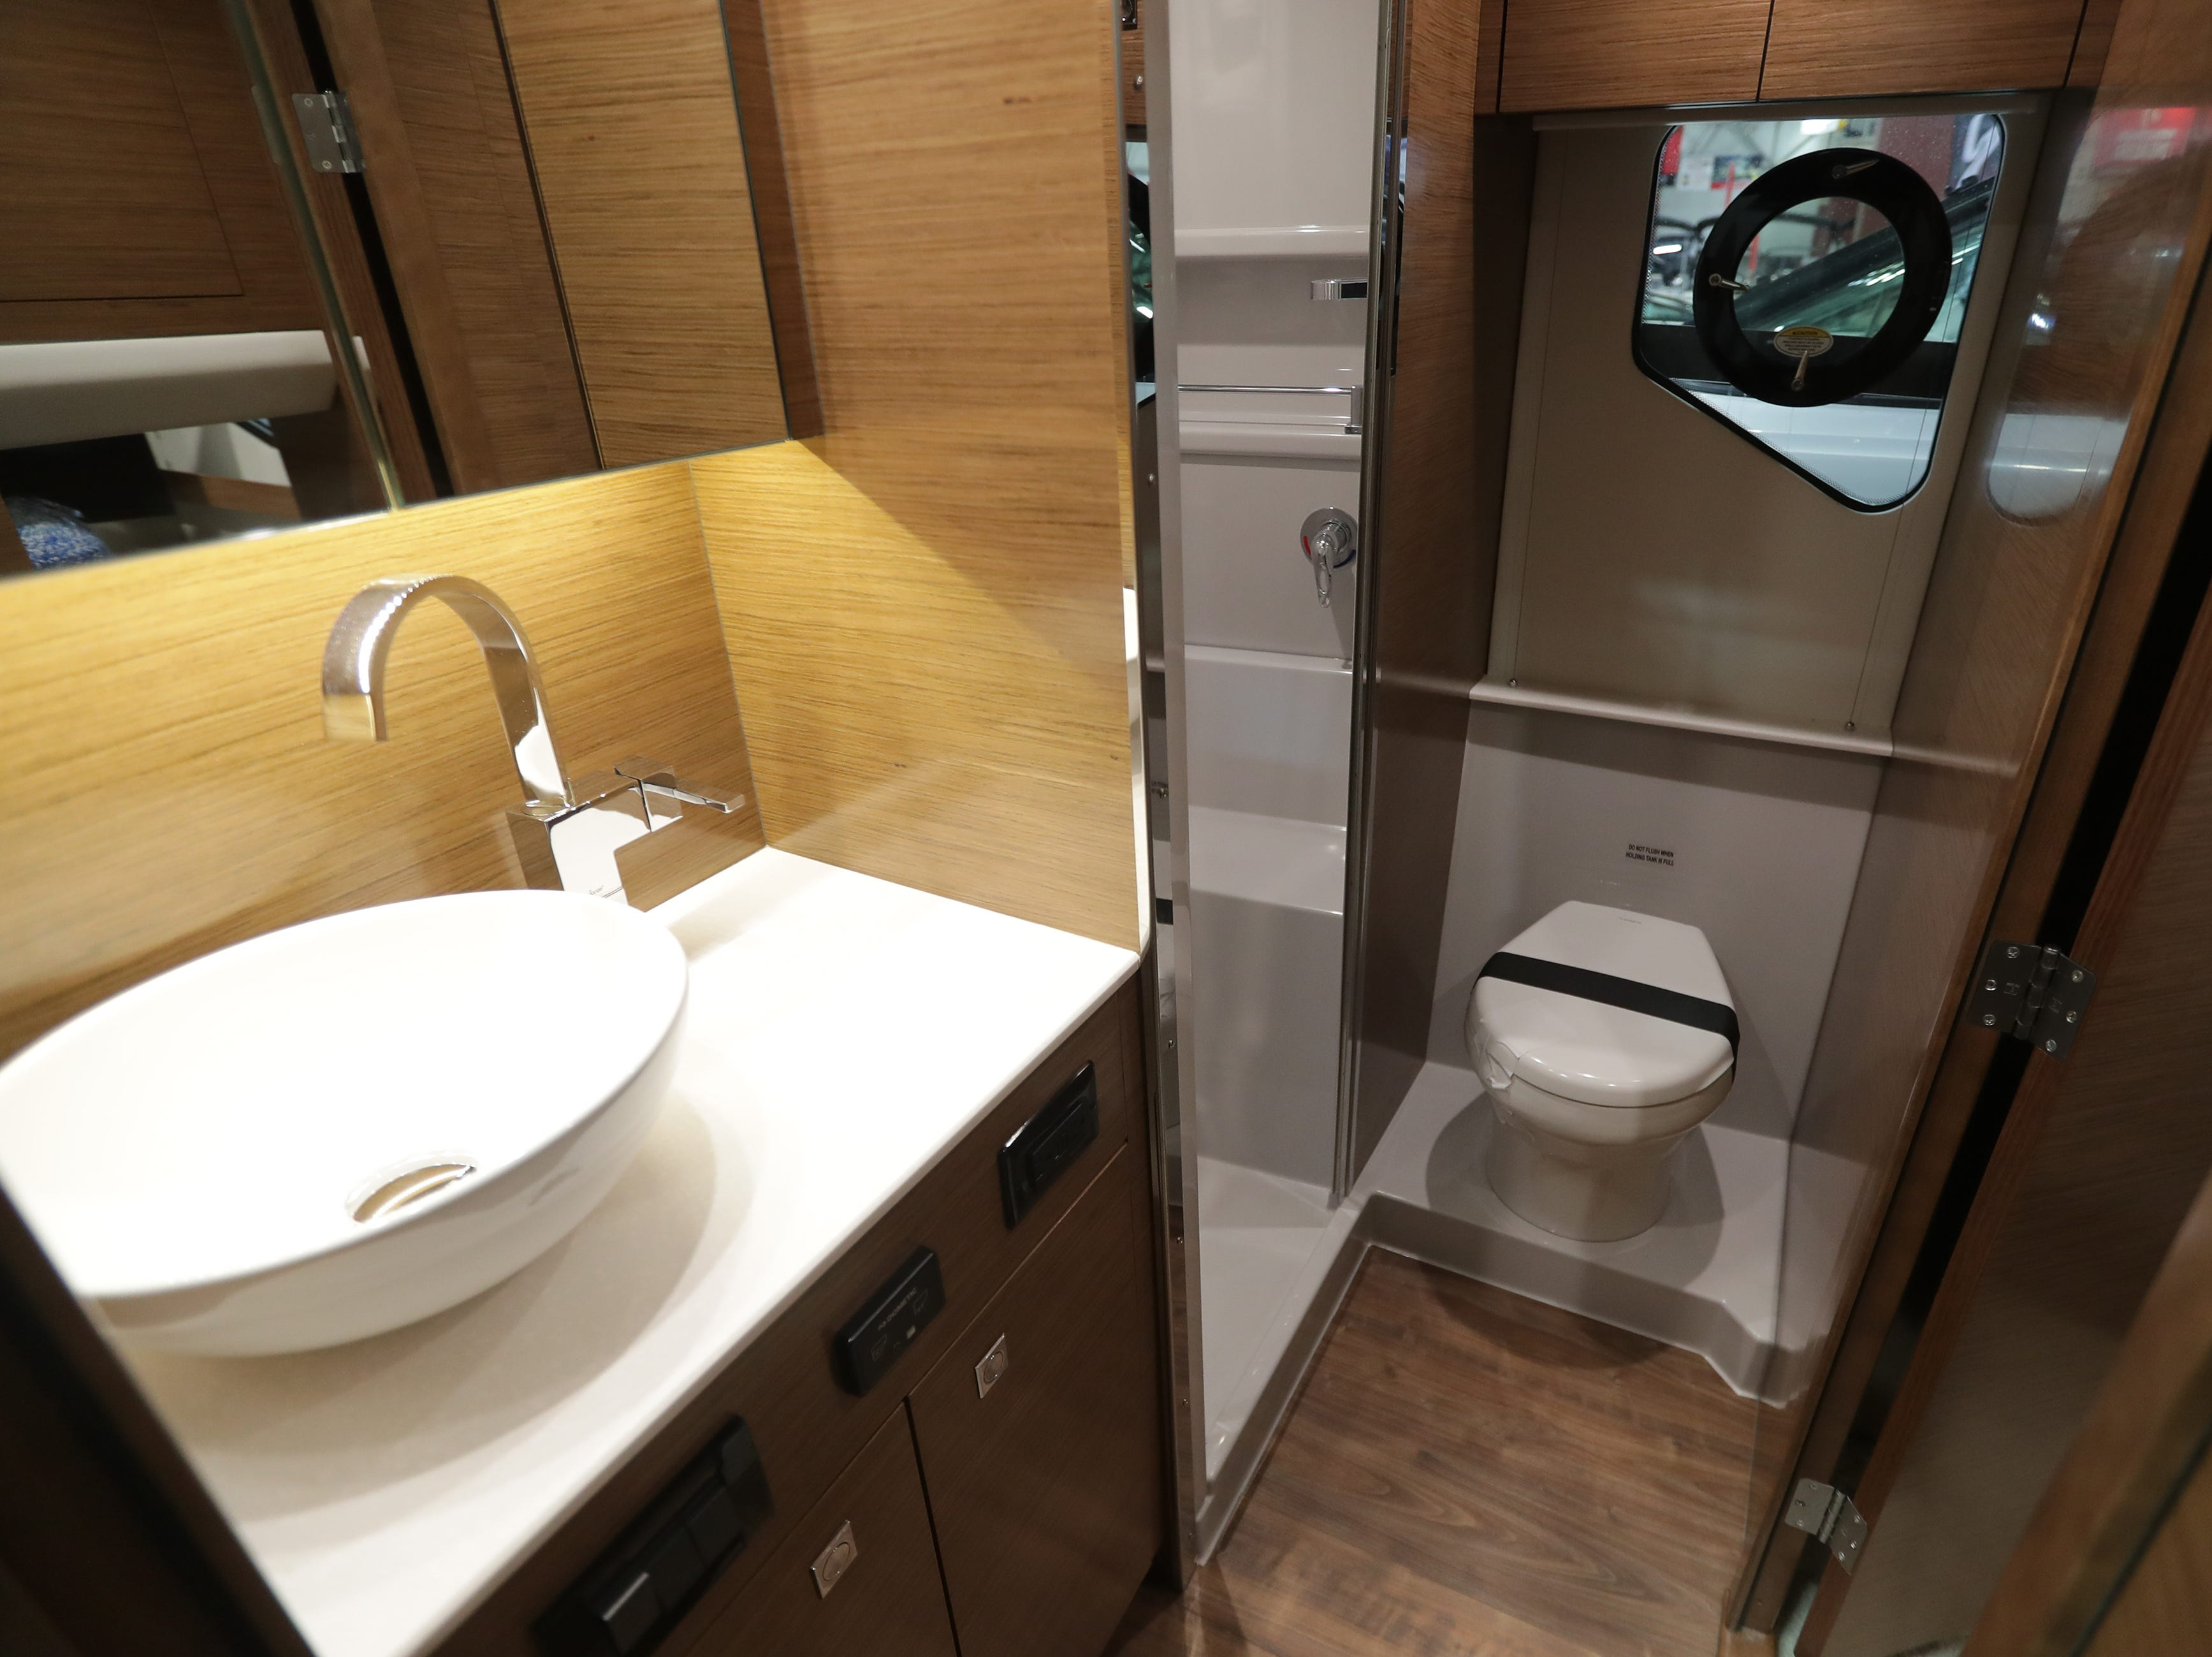 The bathroom of a 2019 42-foot Cruisers Cantius yacht, which lists for $1,022,244.